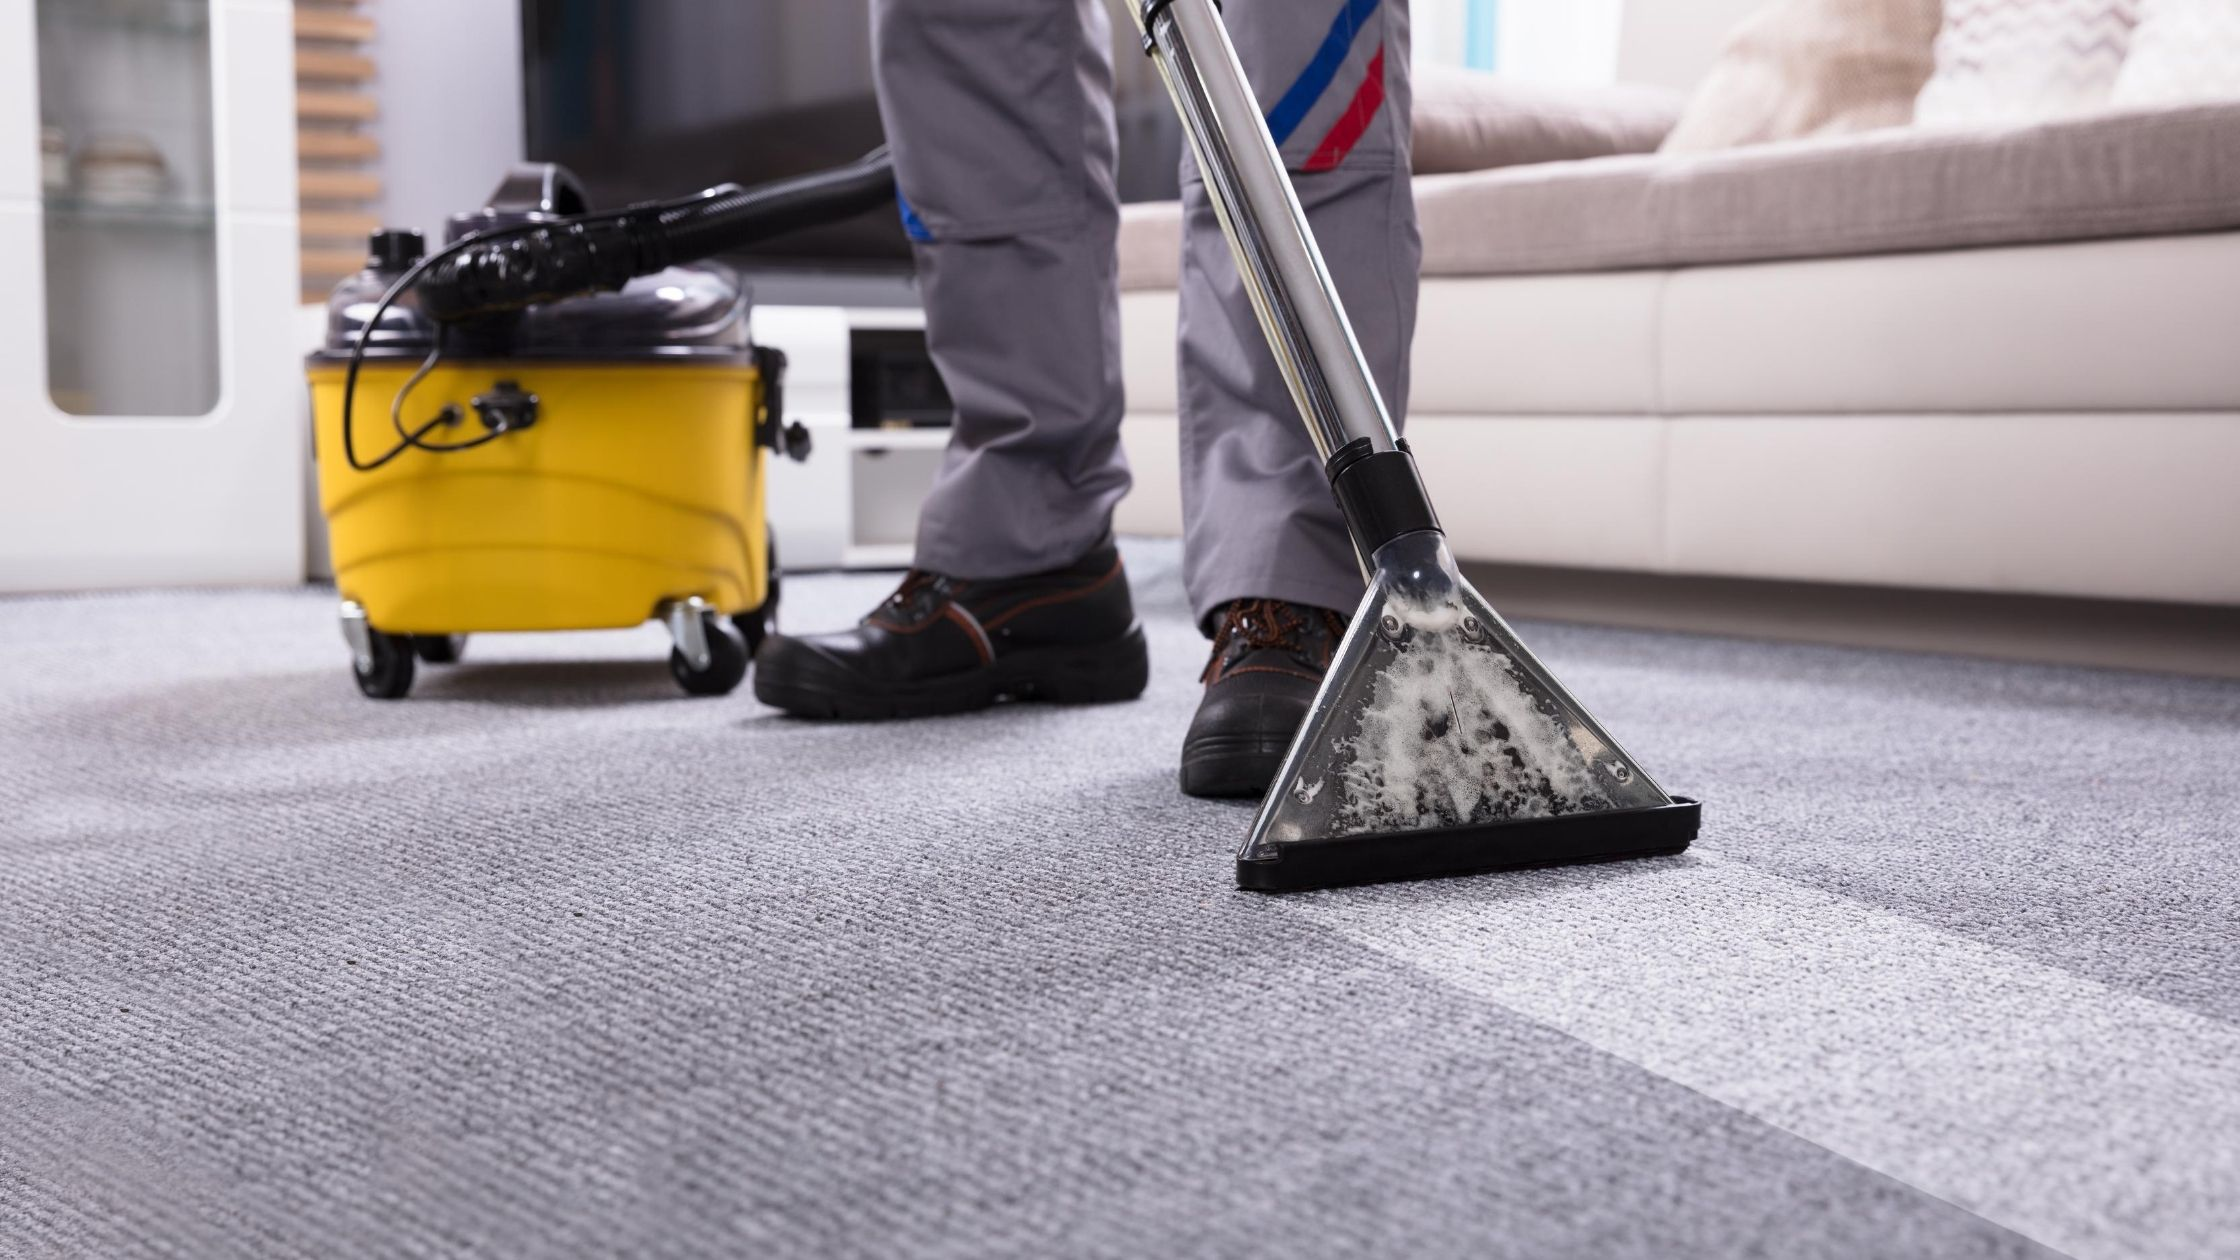 Becoming A Silicon Slopes Based Commercial Carpet Cleaning Service